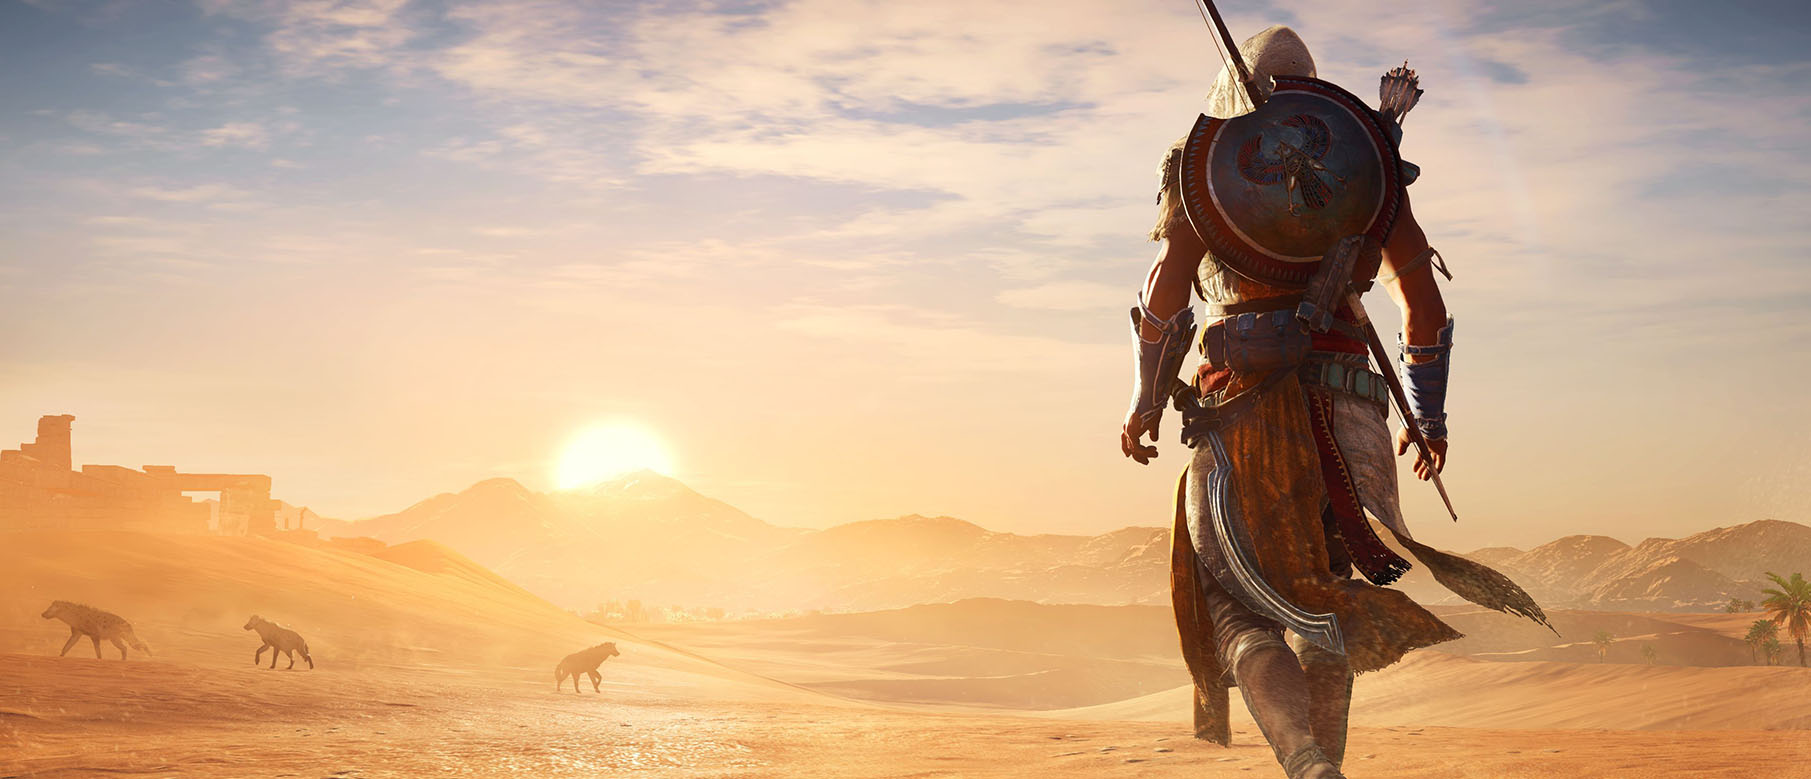 Изображение к Около 30 минут нового геймплея Assassin's Creed Origins